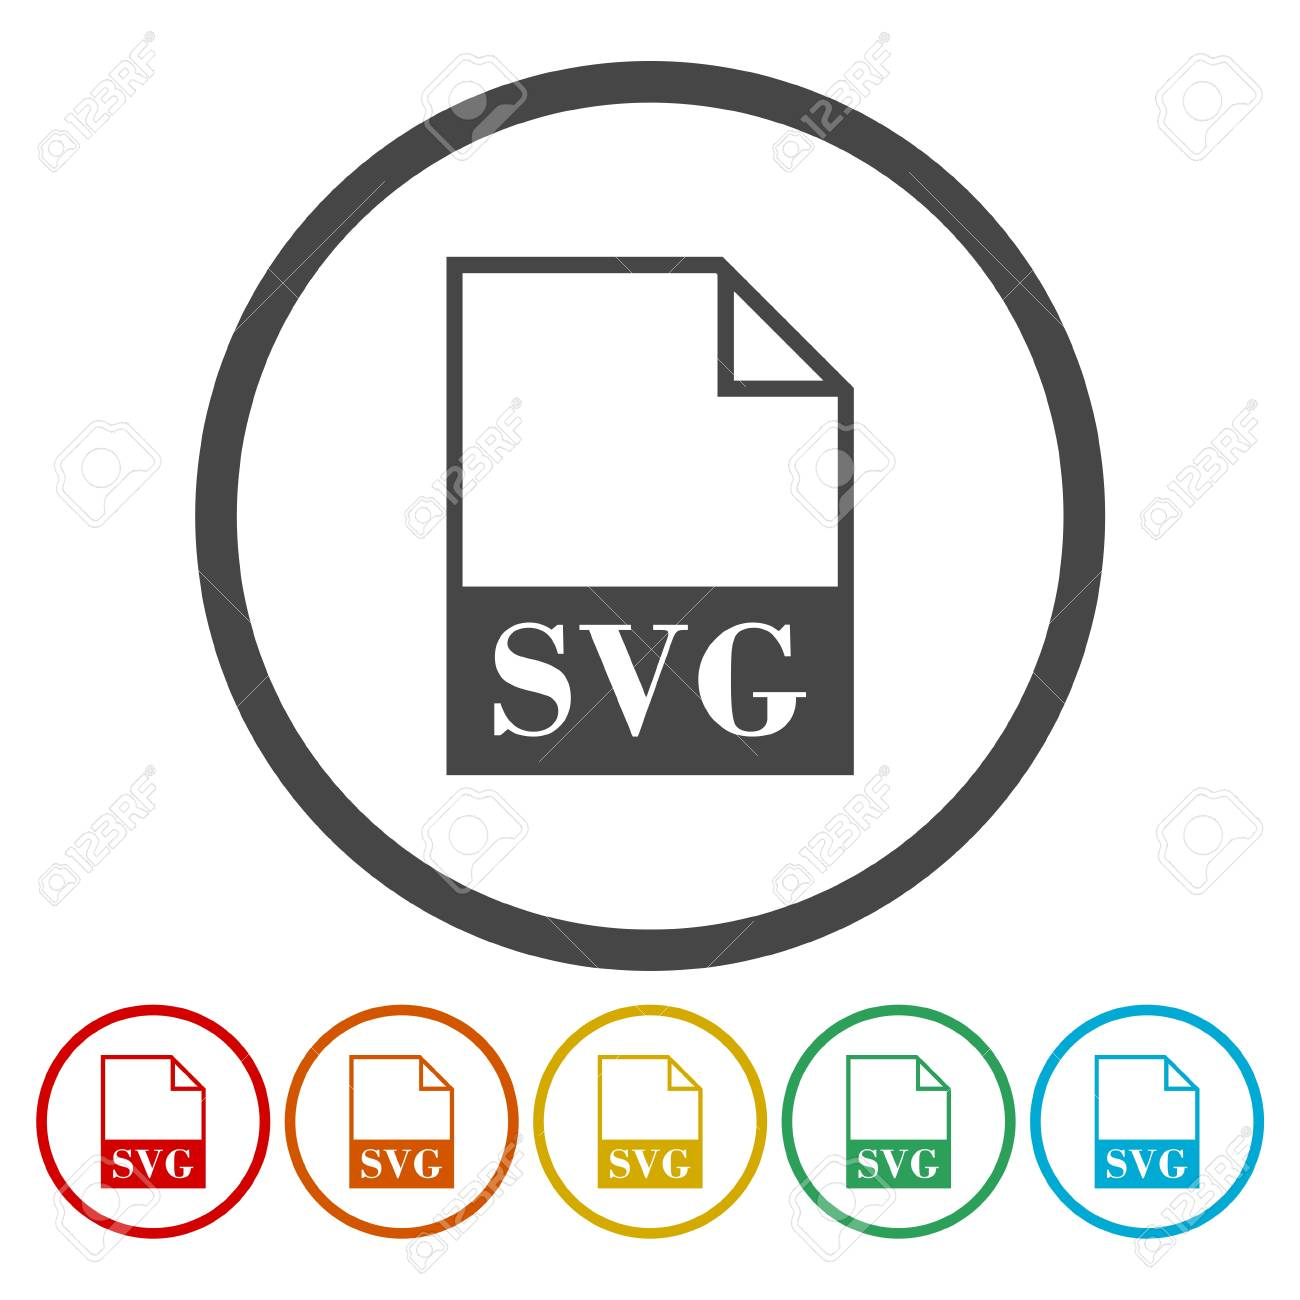 Set of colorful SVG file icon. Stock Vector - 85103427